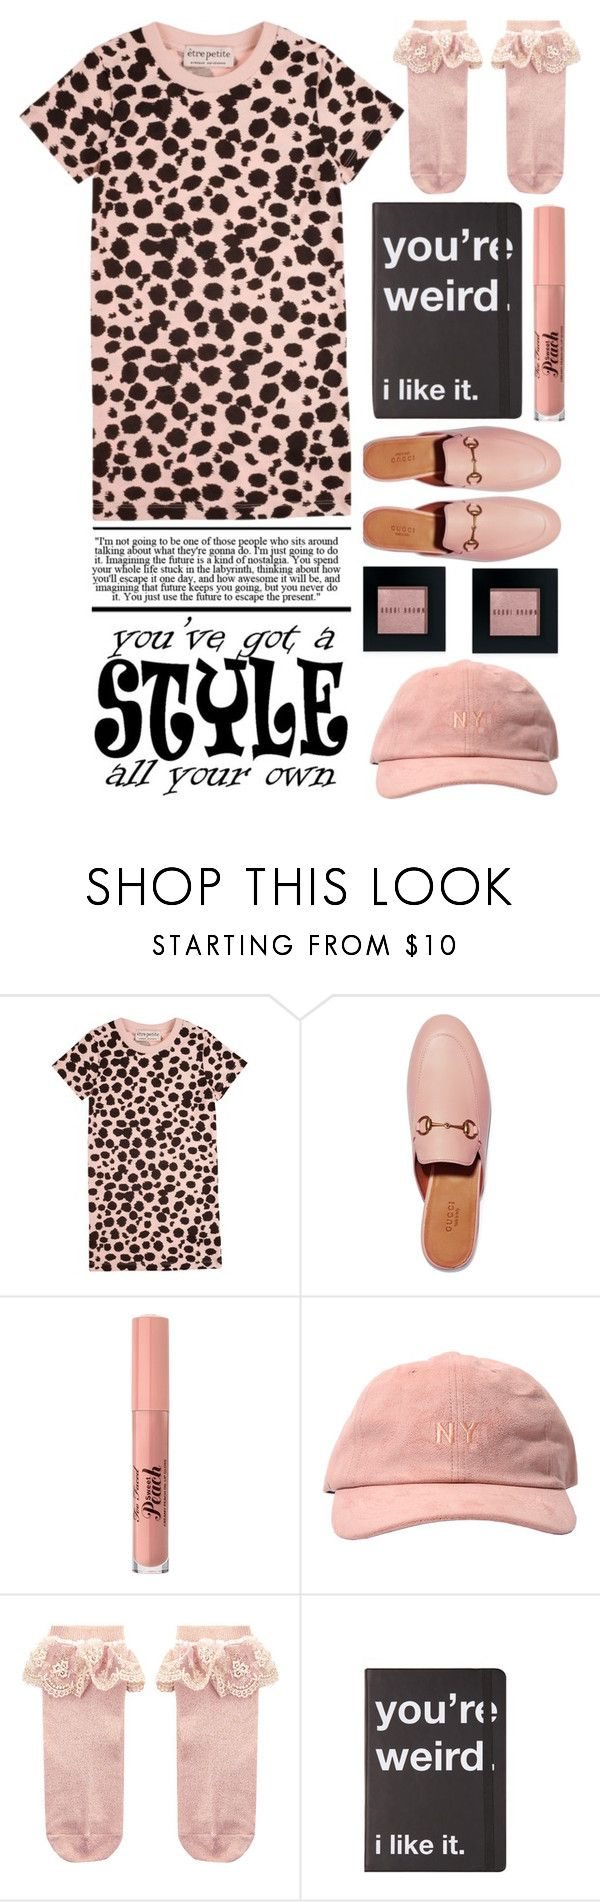 """You've Got A Style All Your Own"" by emcf3548 ❤ liked on Polyvore featuring Être Cécile, Gucci, Too Faced Cosmetics, Monsoon, Bobbi Brown Cosmetics and GUESS"